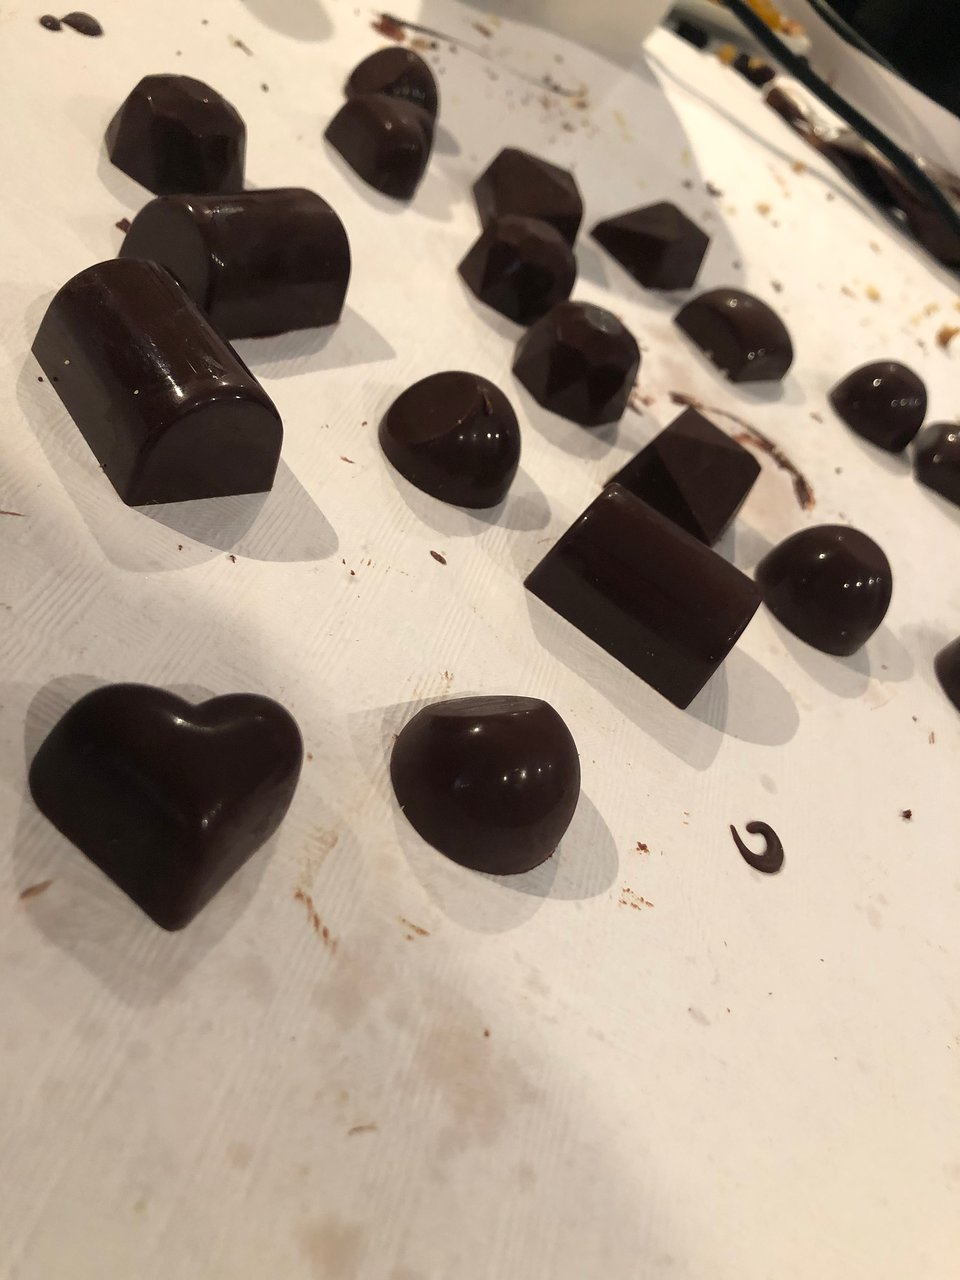 Belgian Chocolate Workshop Brussels 2020 All You Need To